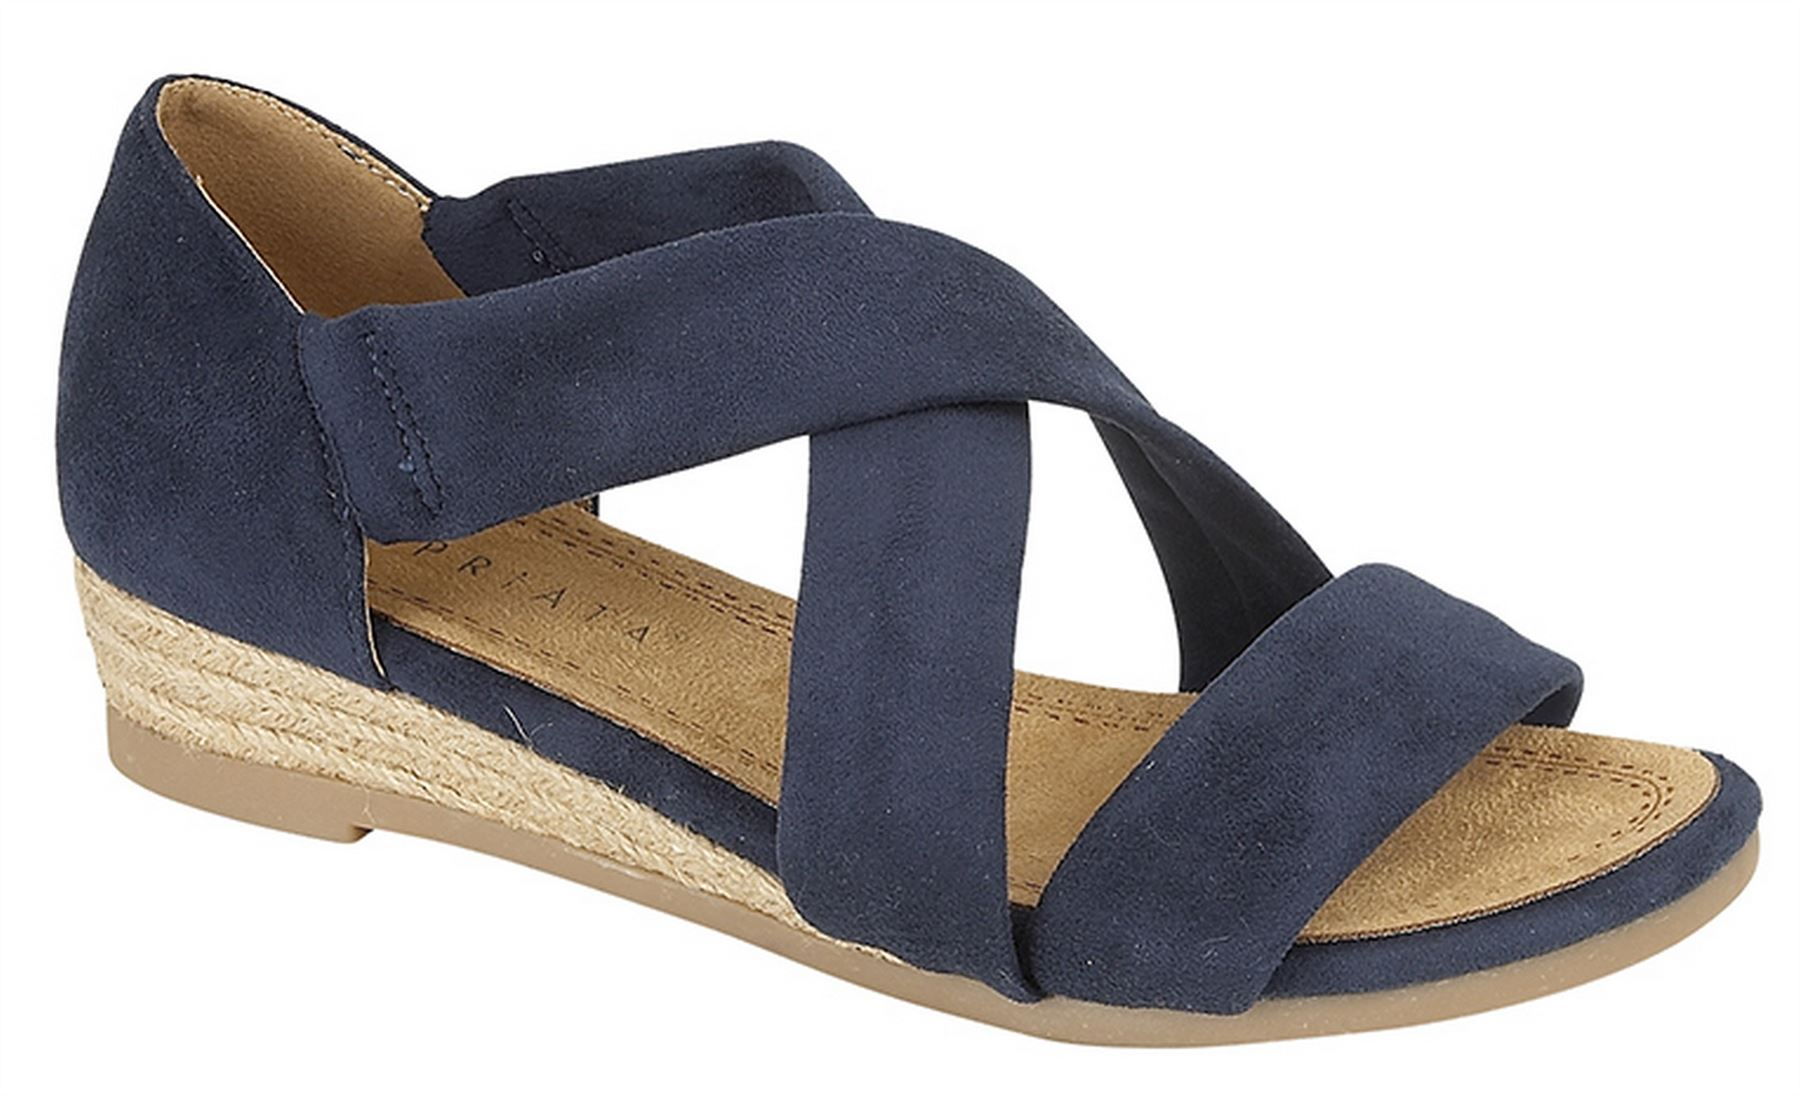 36570136101 Details about Ladies Womens Sandals Wedge Stretchy Heel-In Crossover Bar  Espadrilles Shoes